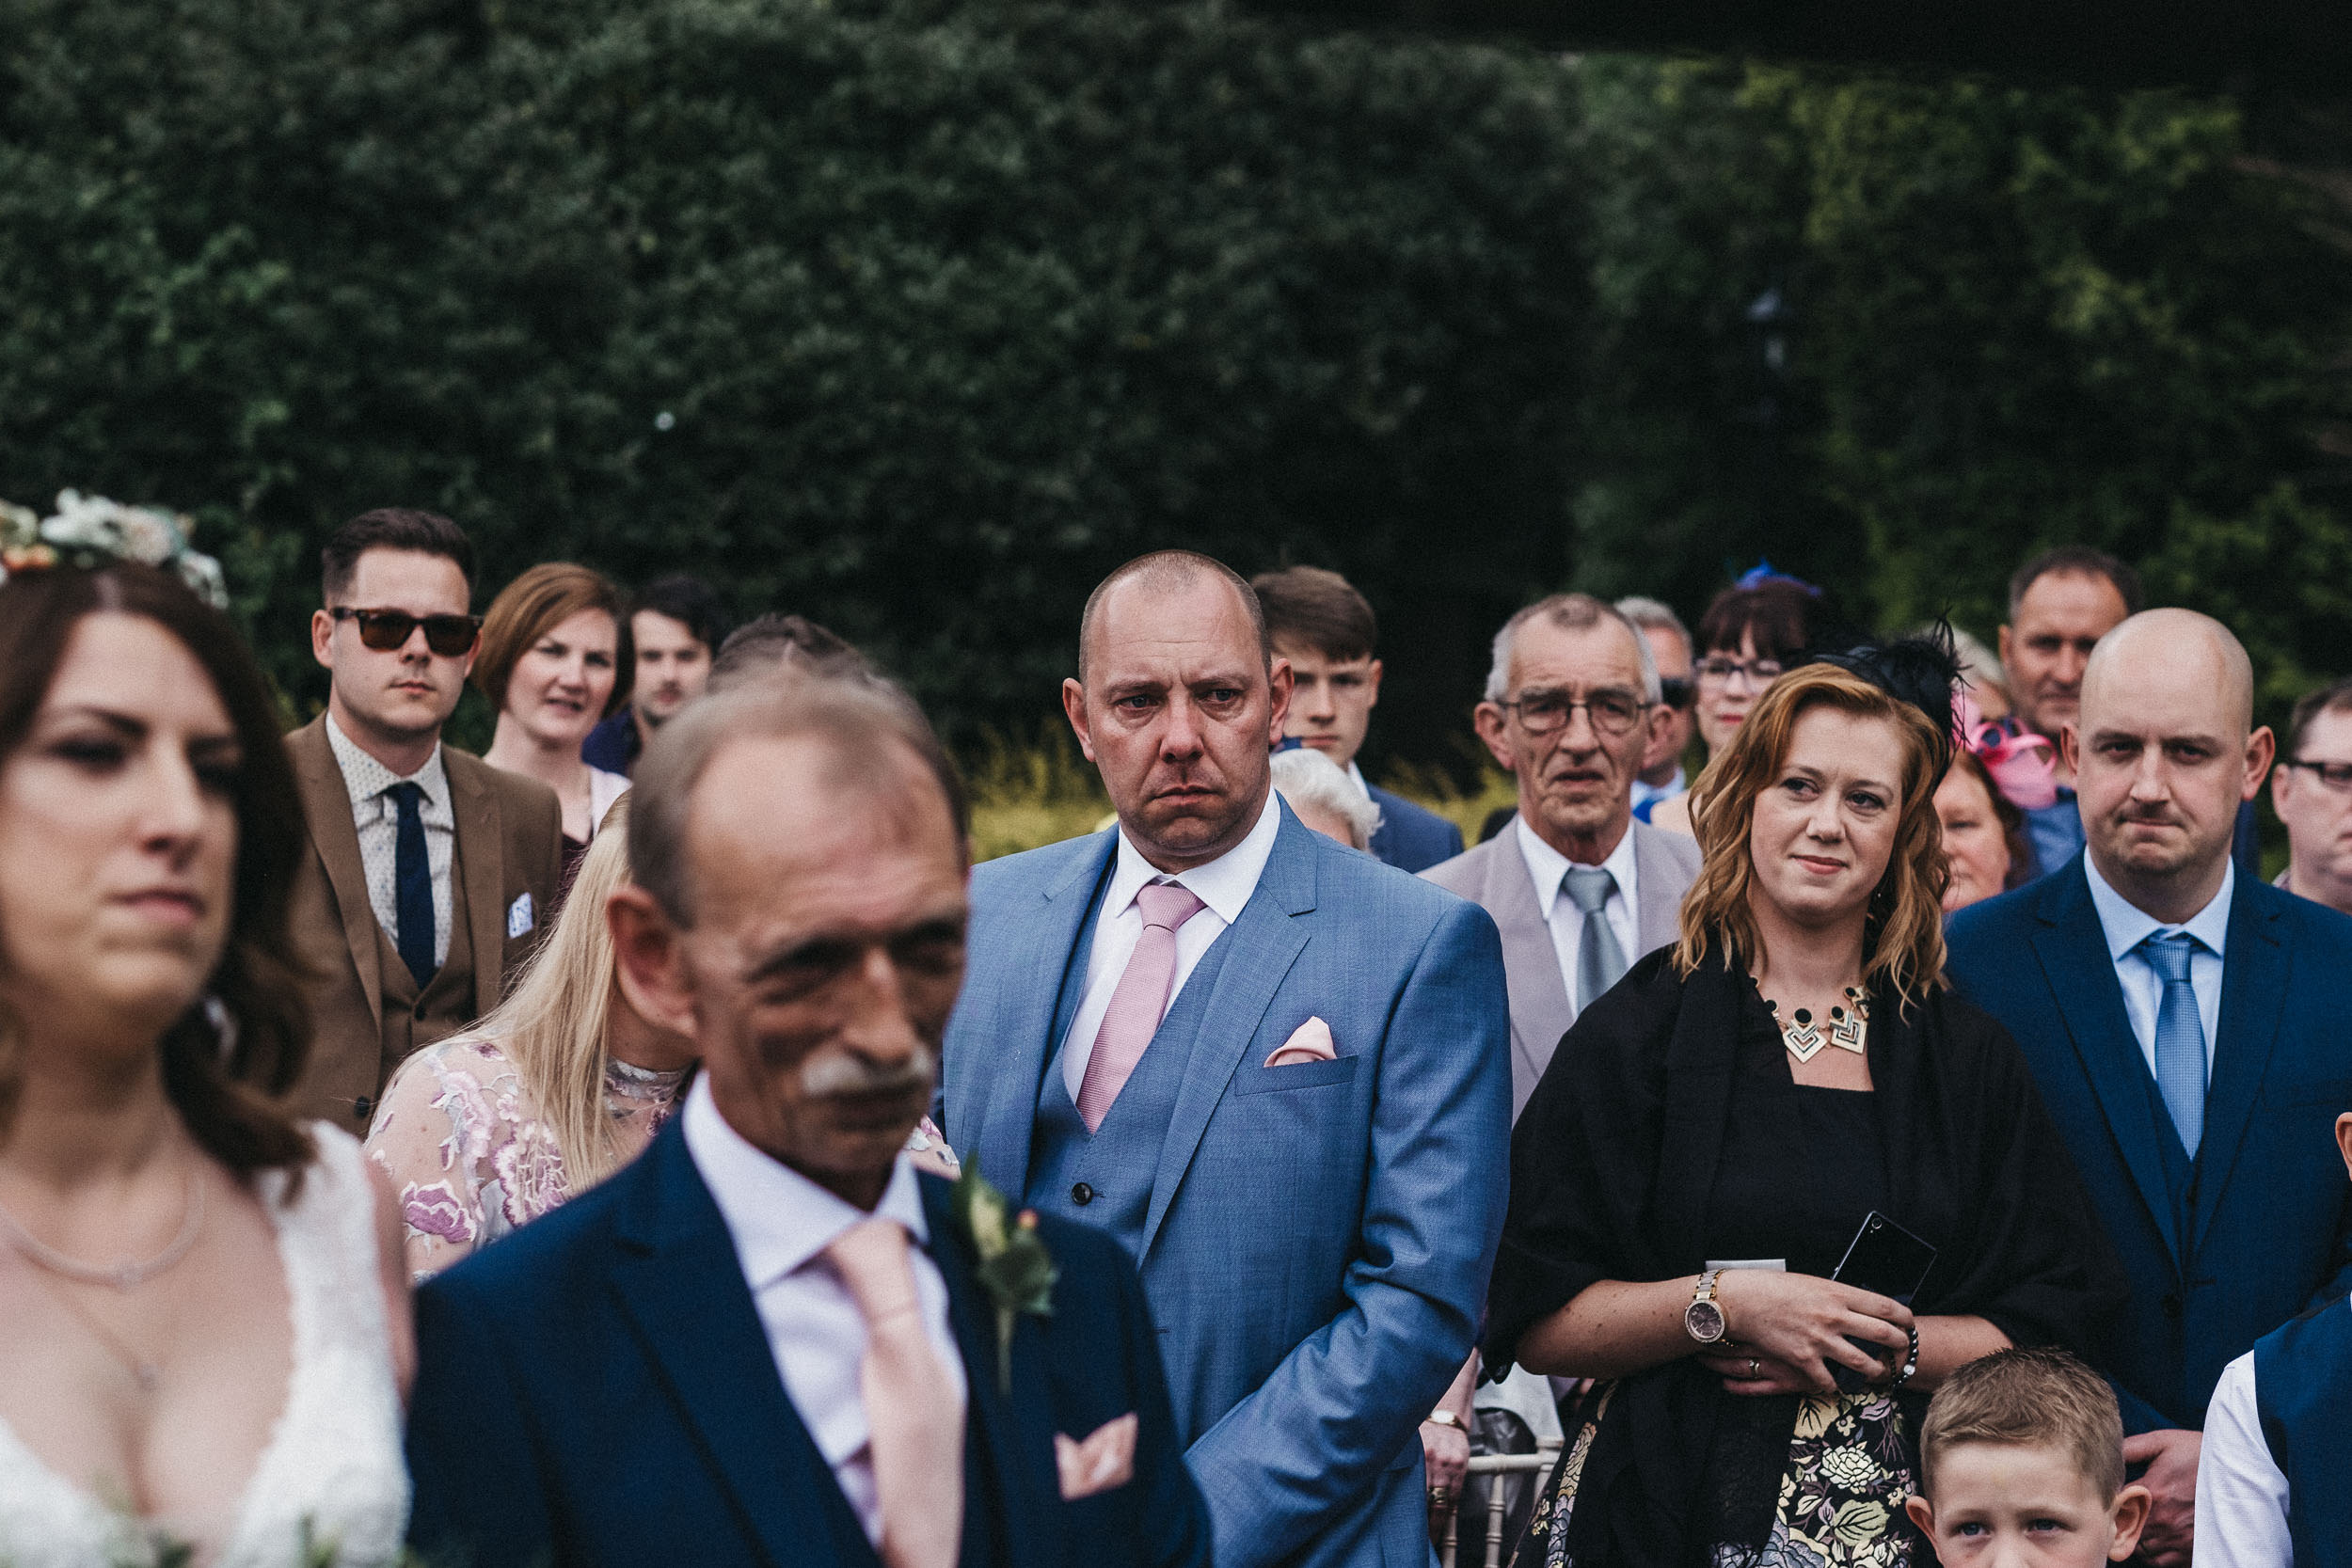 Tearful guest as bride arrives at end of aisle